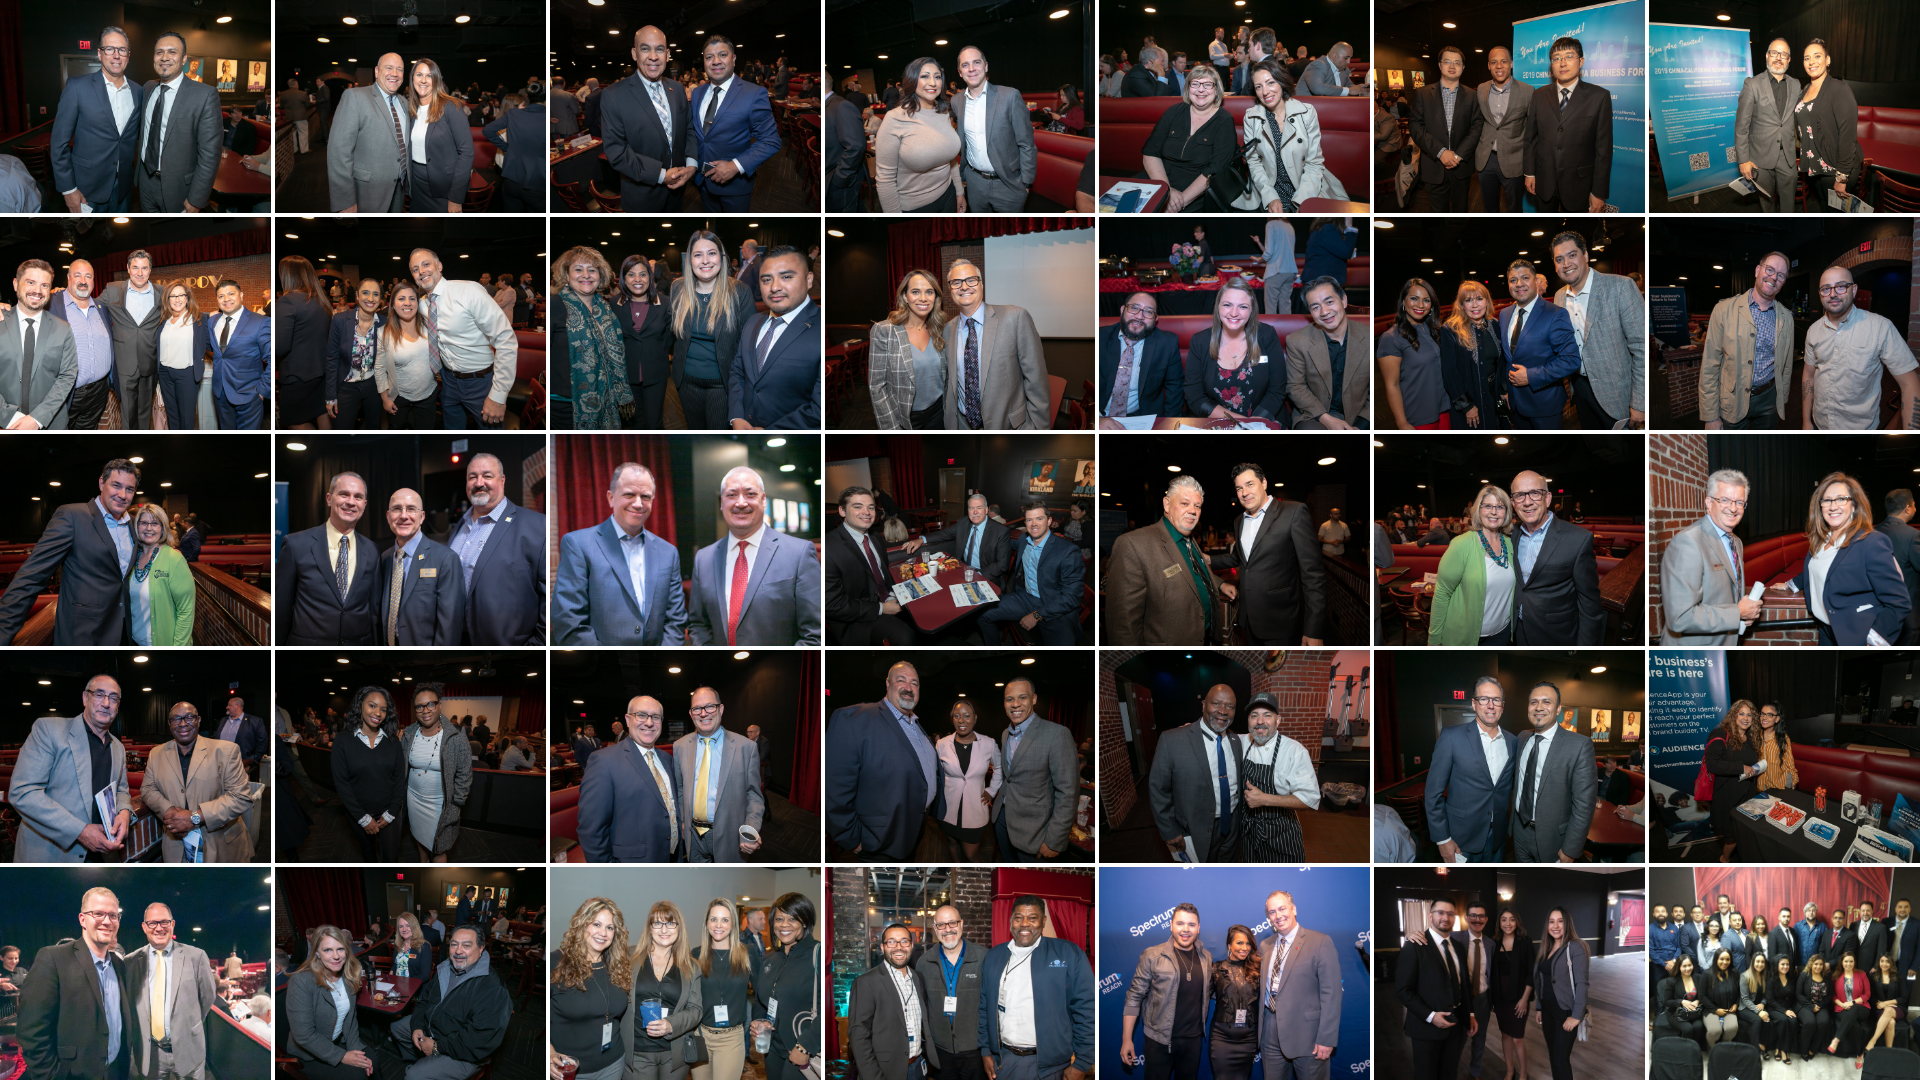 Picture collage of regional chamber members and business community members